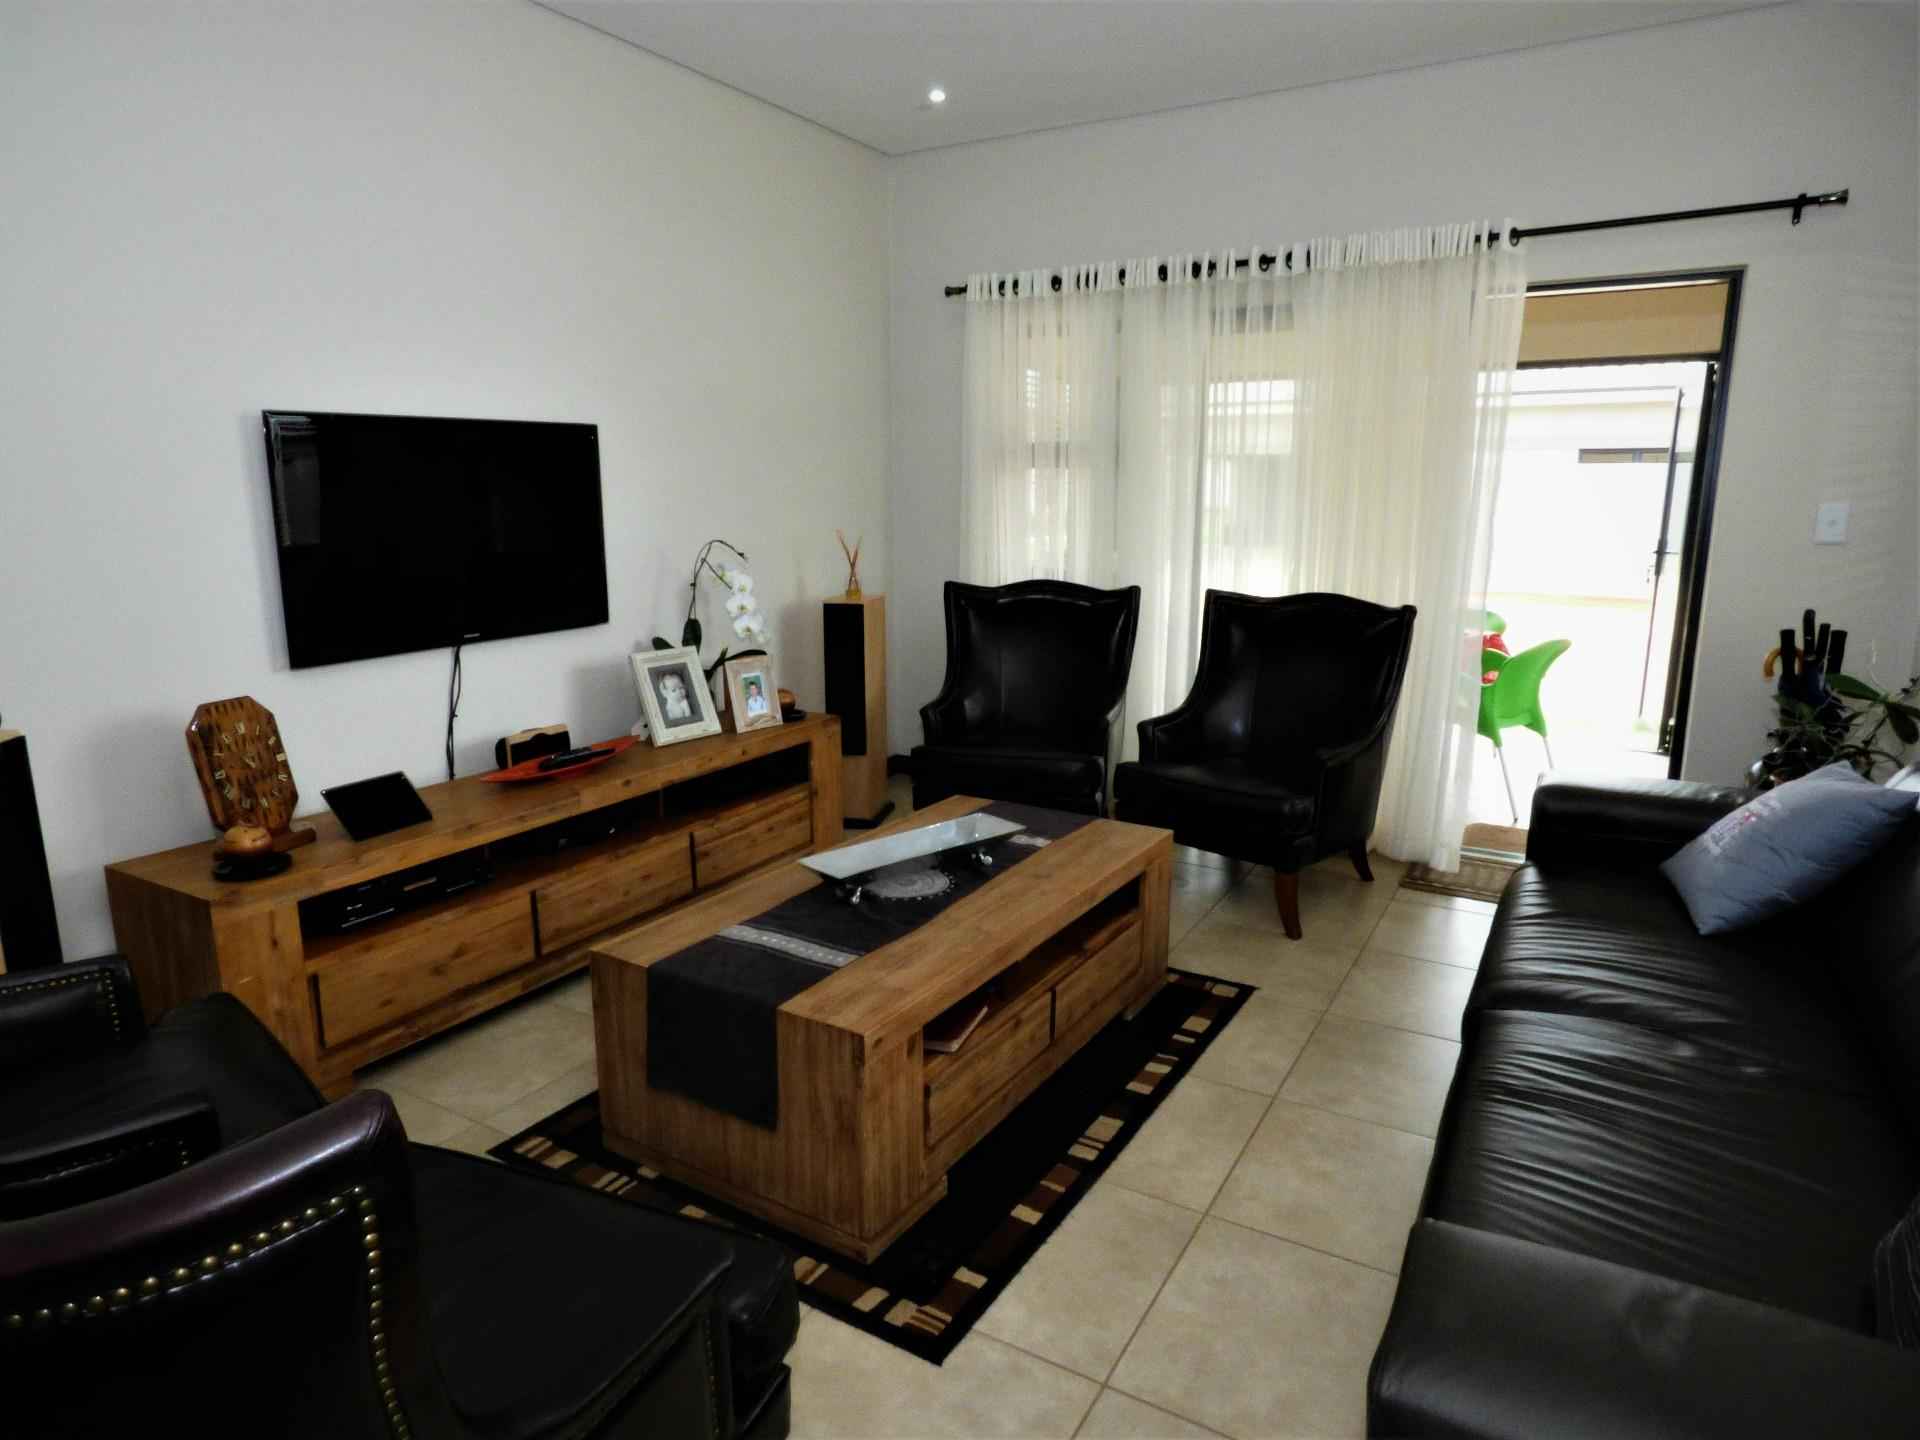 189 Eastlands Drive, Bredell, Kempton Park - ZAF (photo 3)